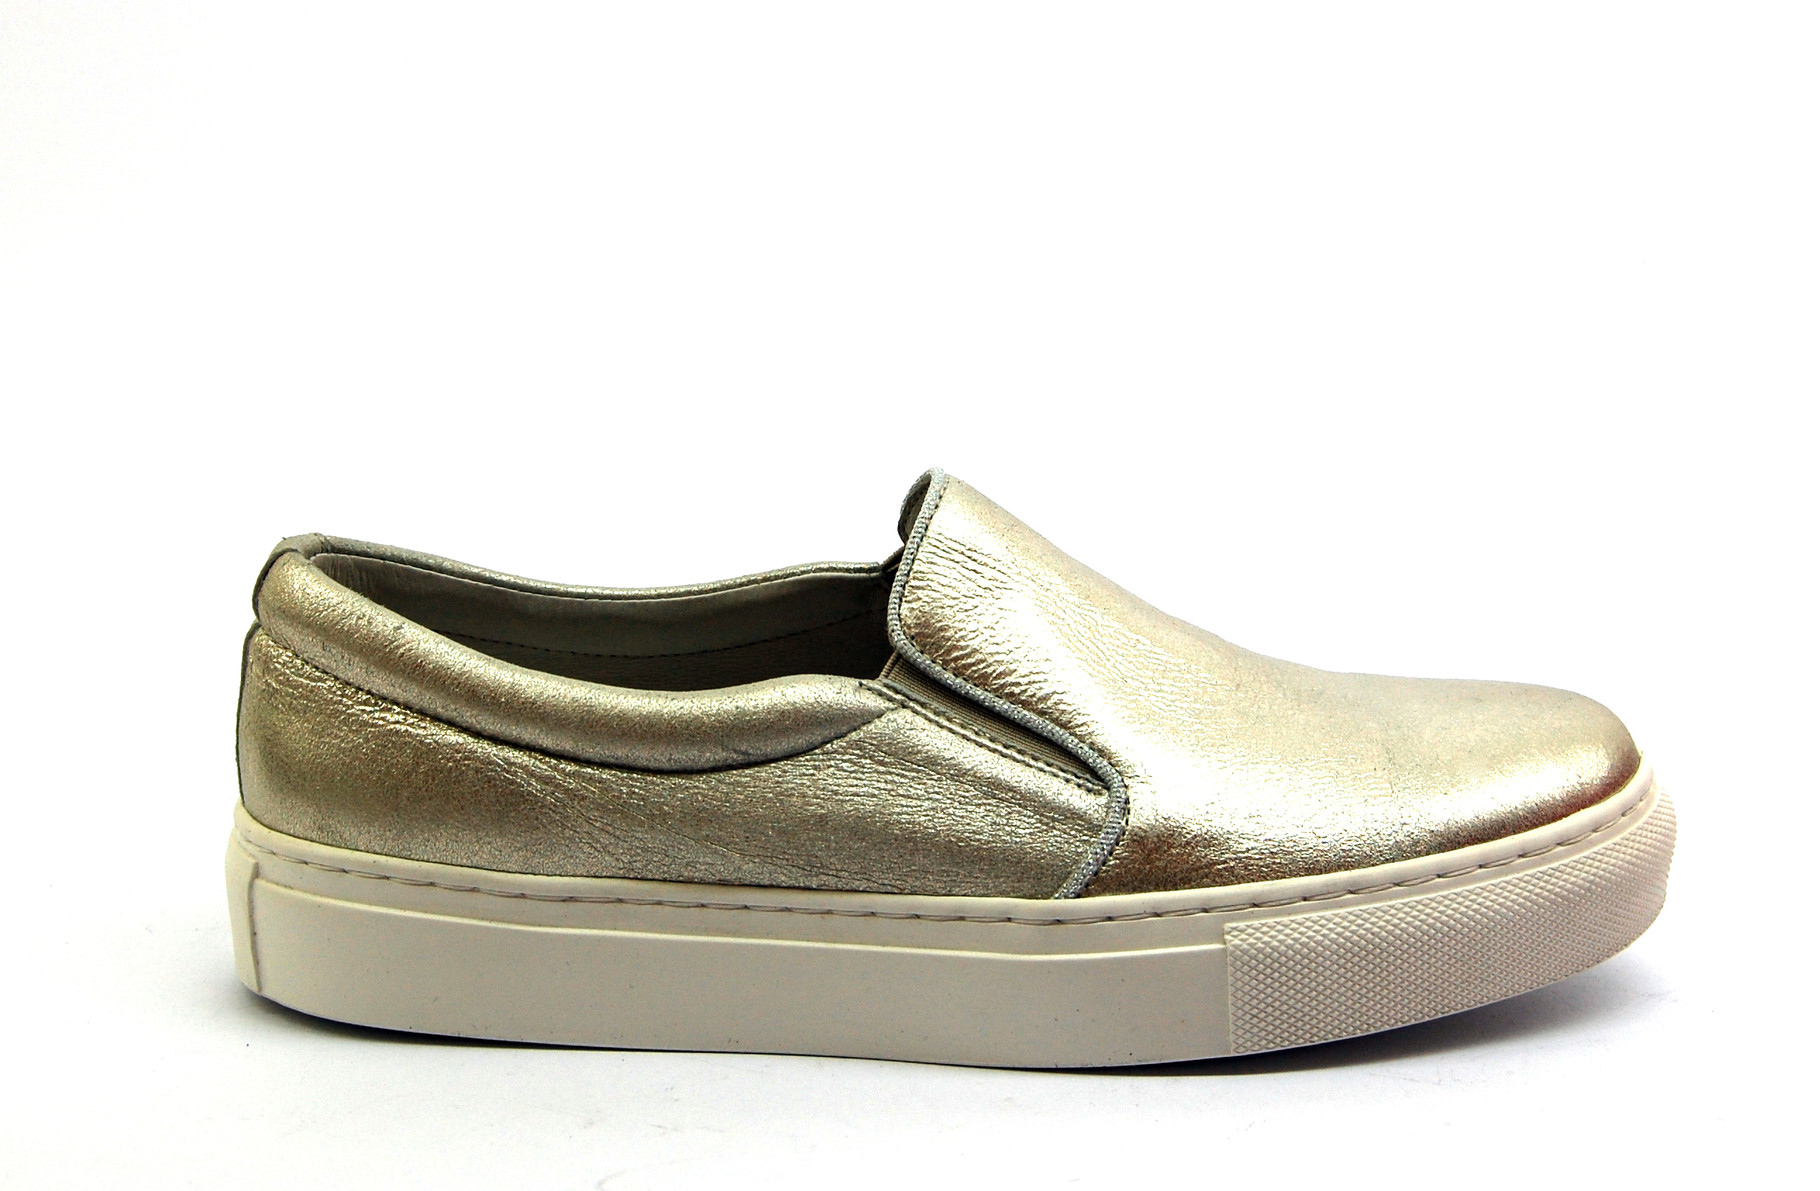 KMB Leder Slip-On Metallisiert